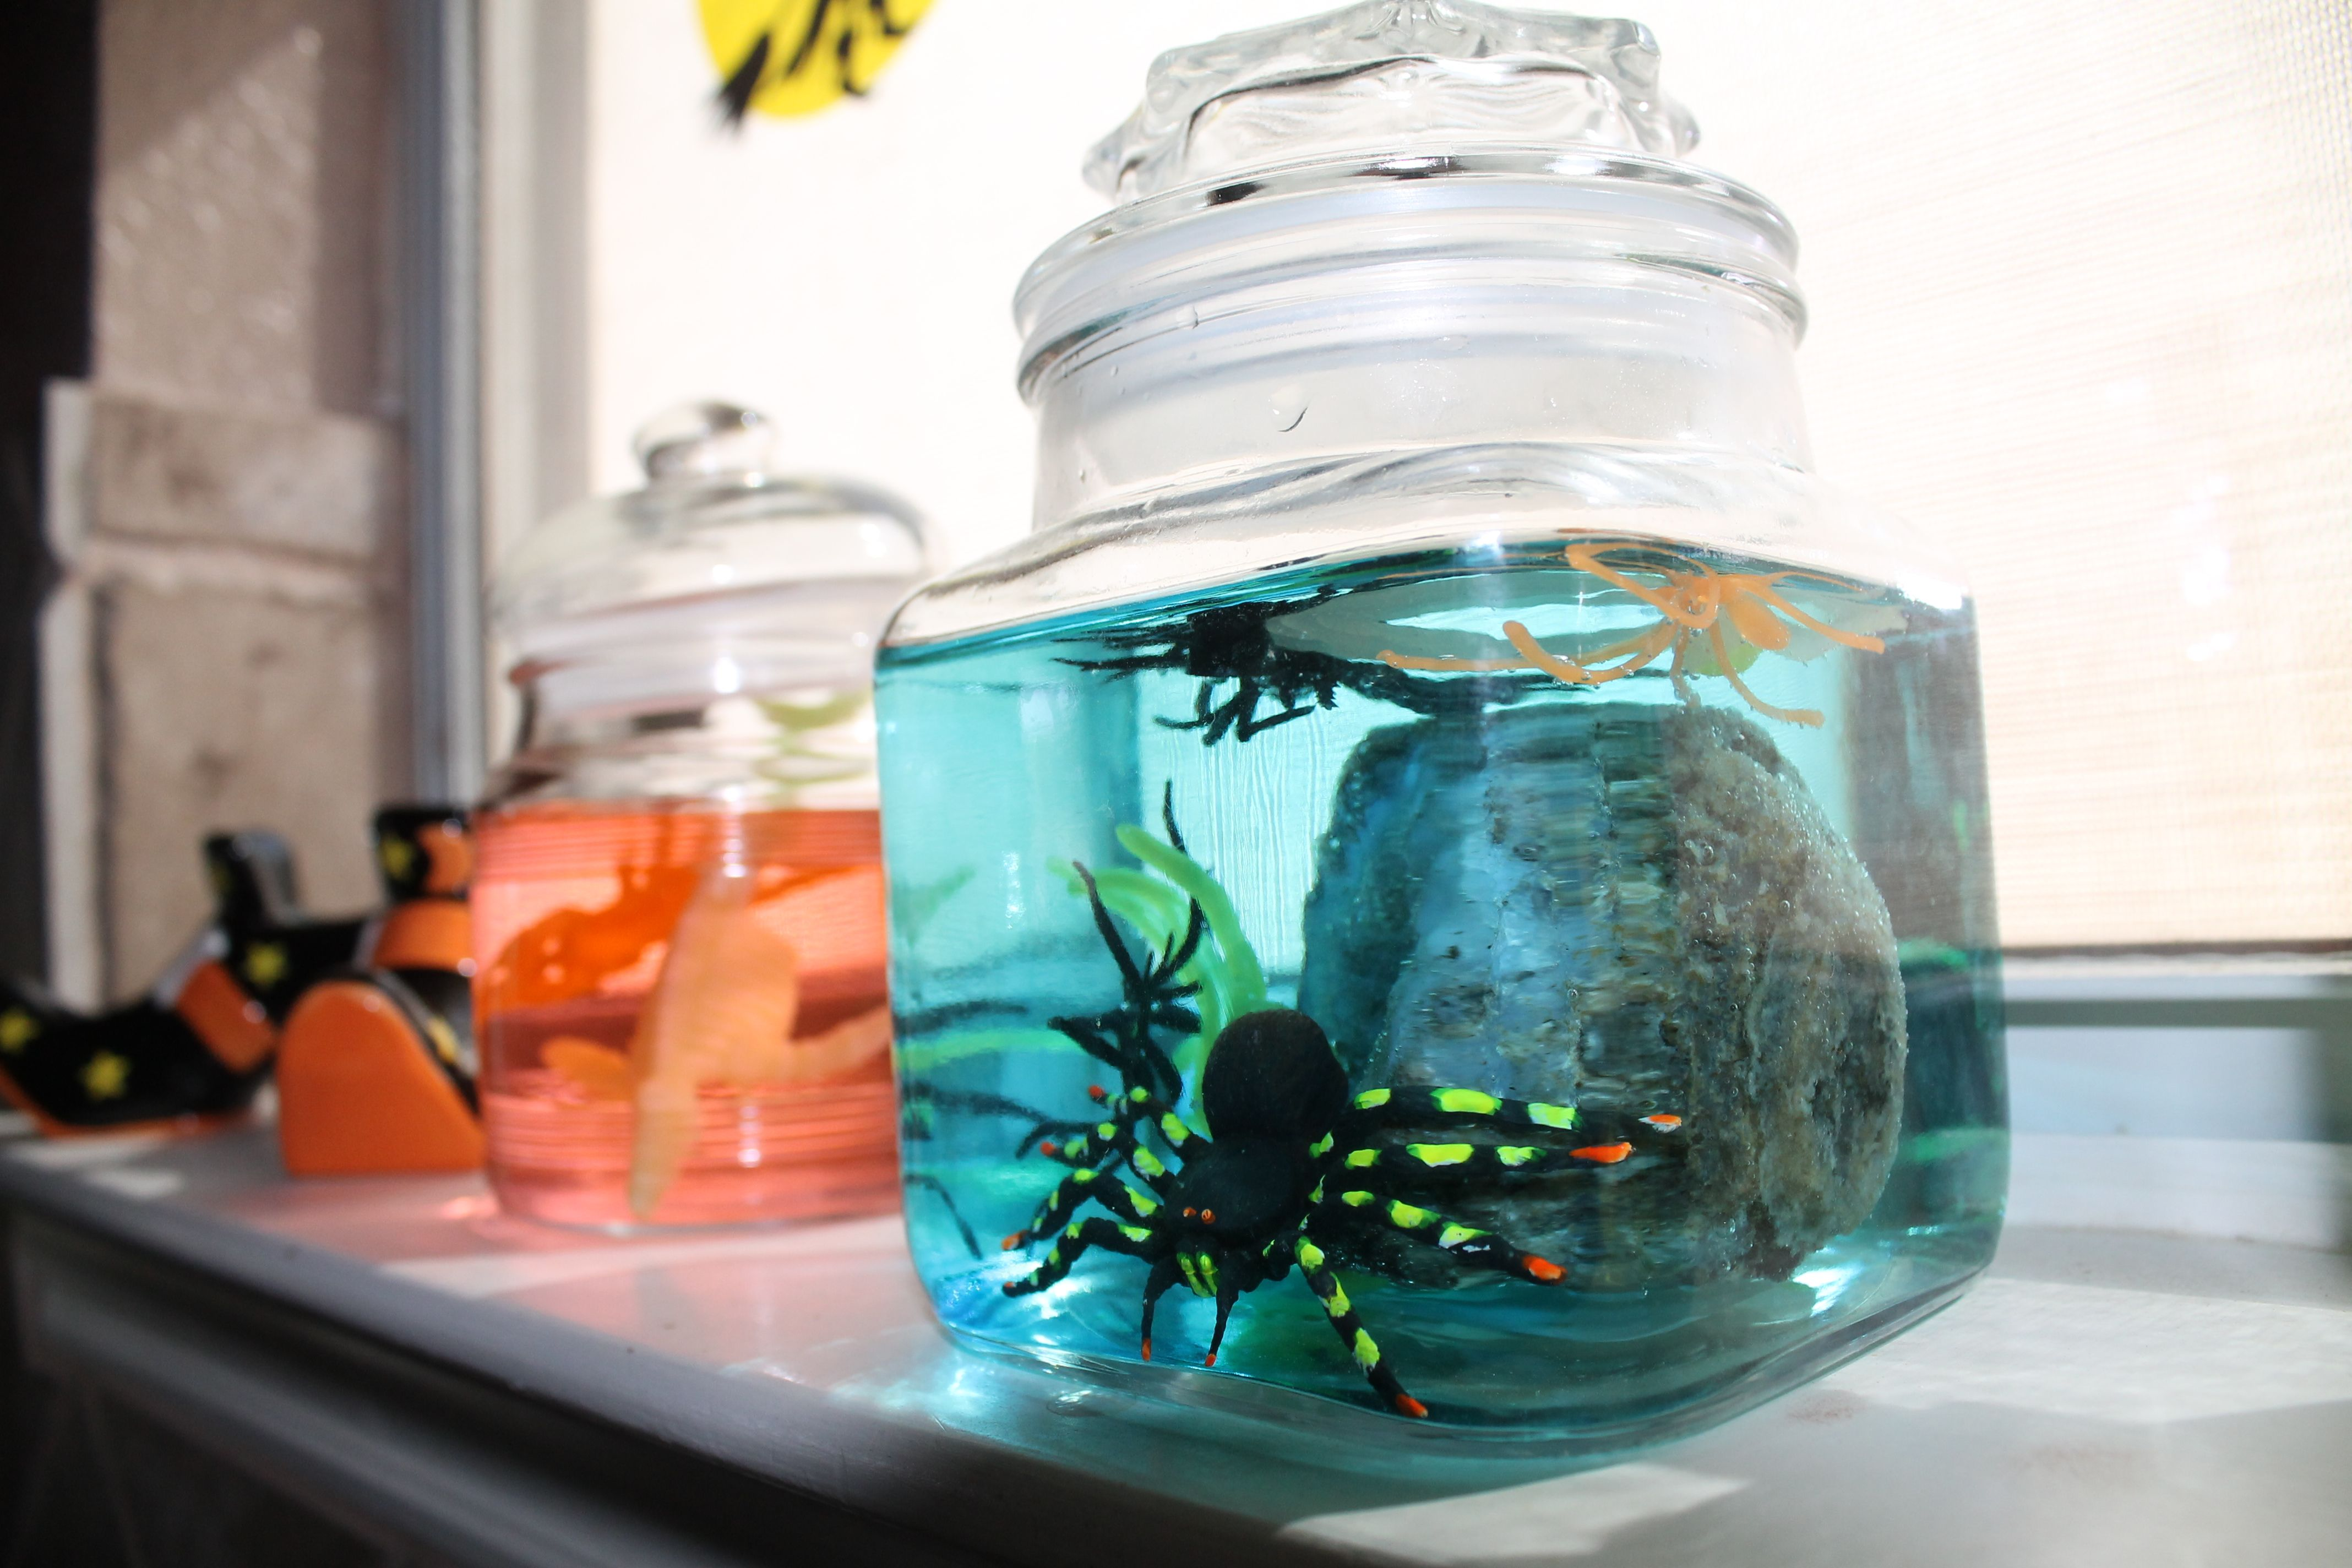 Put plastic bugsspiders in jar fill with colored water for a